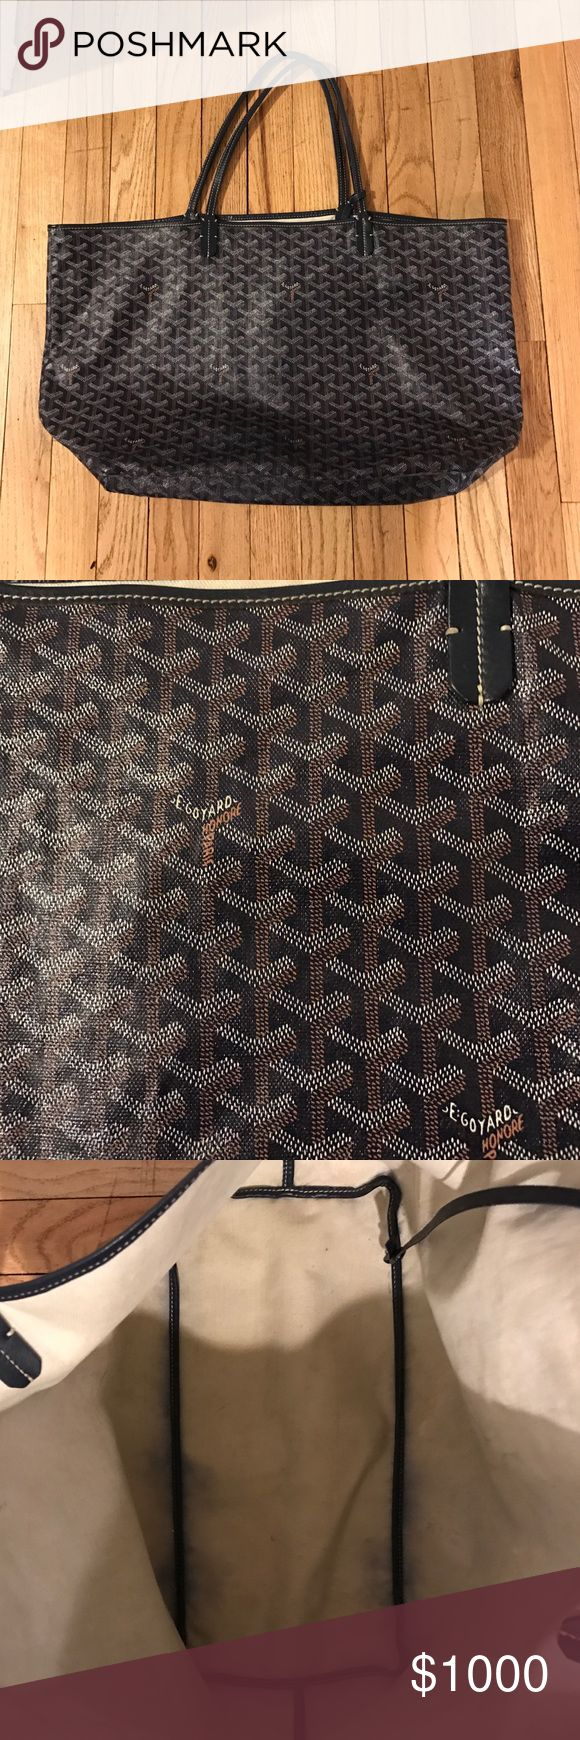 Authentic Goyard Saint Louis Navy. Size GM Reposhing and already authenticated!! Love this bag but I'm really looking for the smaller pm size. A blend of luxury and casual chic. Signs of wear but still in great shape. Corners are scuffed and minor wear on one handle. I love this bag but for the price, I should be using it more than I do. Timeless, everyday bag. Pouch not included FYI Goyard Bags